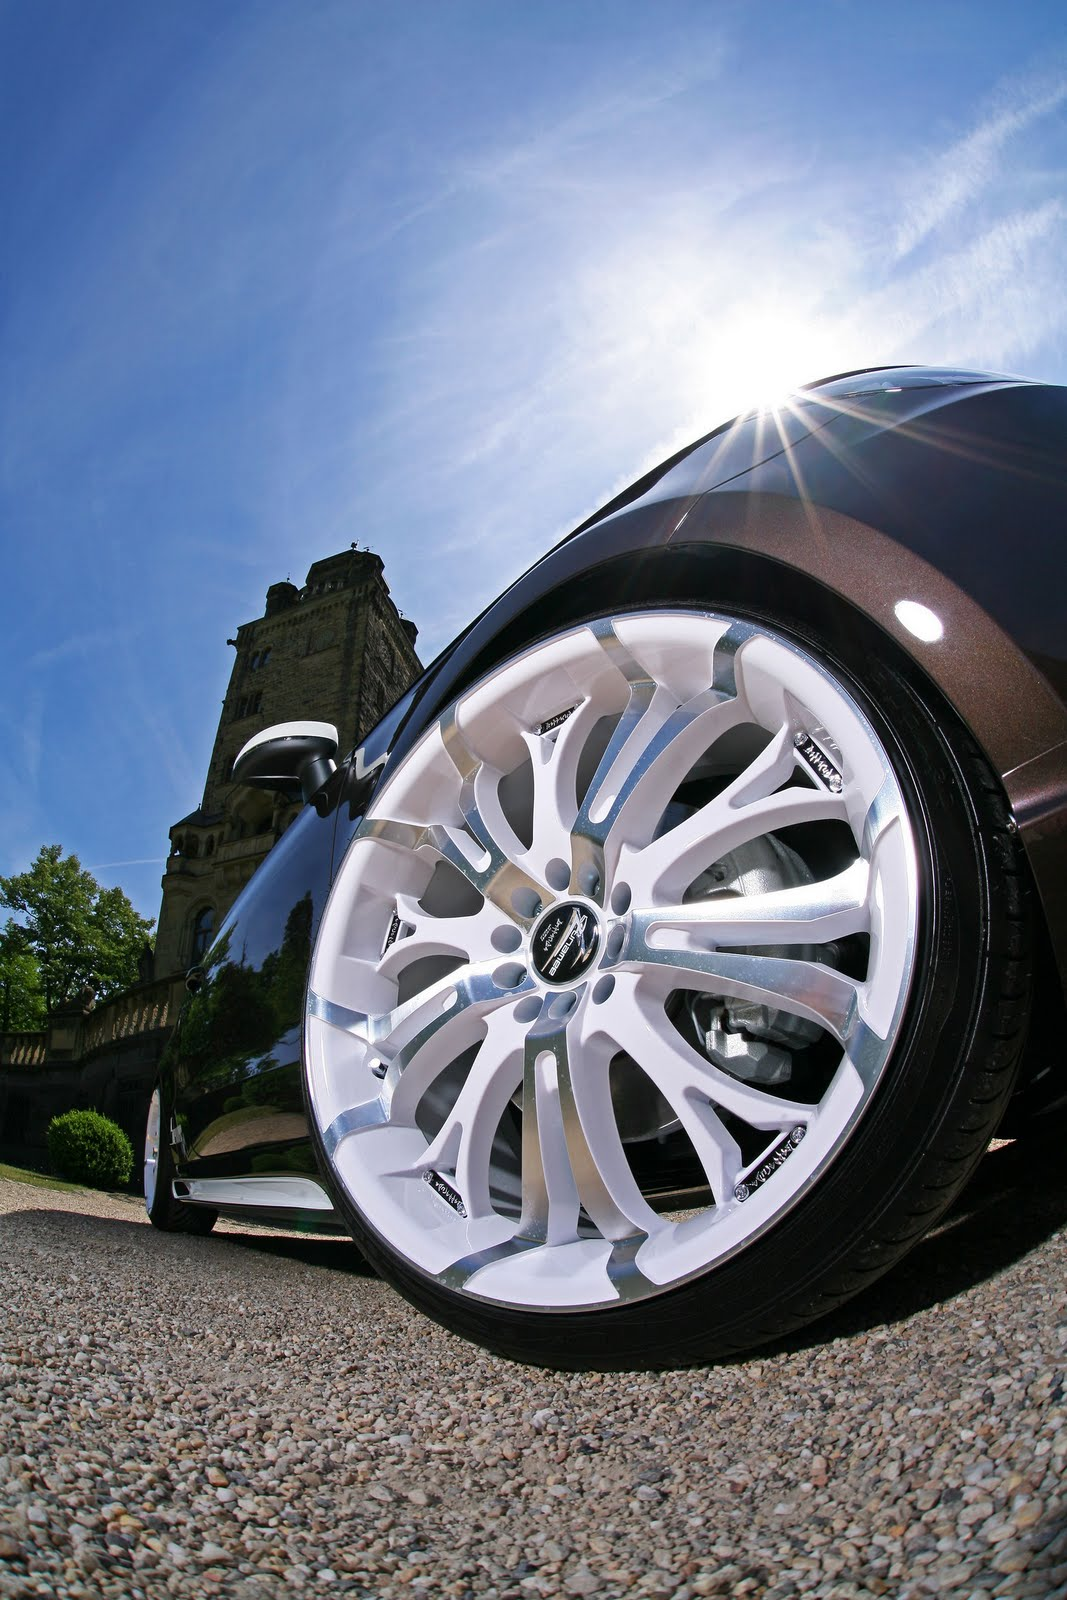 Audi A1 Senner Tuning 1 Senner  Launched Car Upgradation Kit